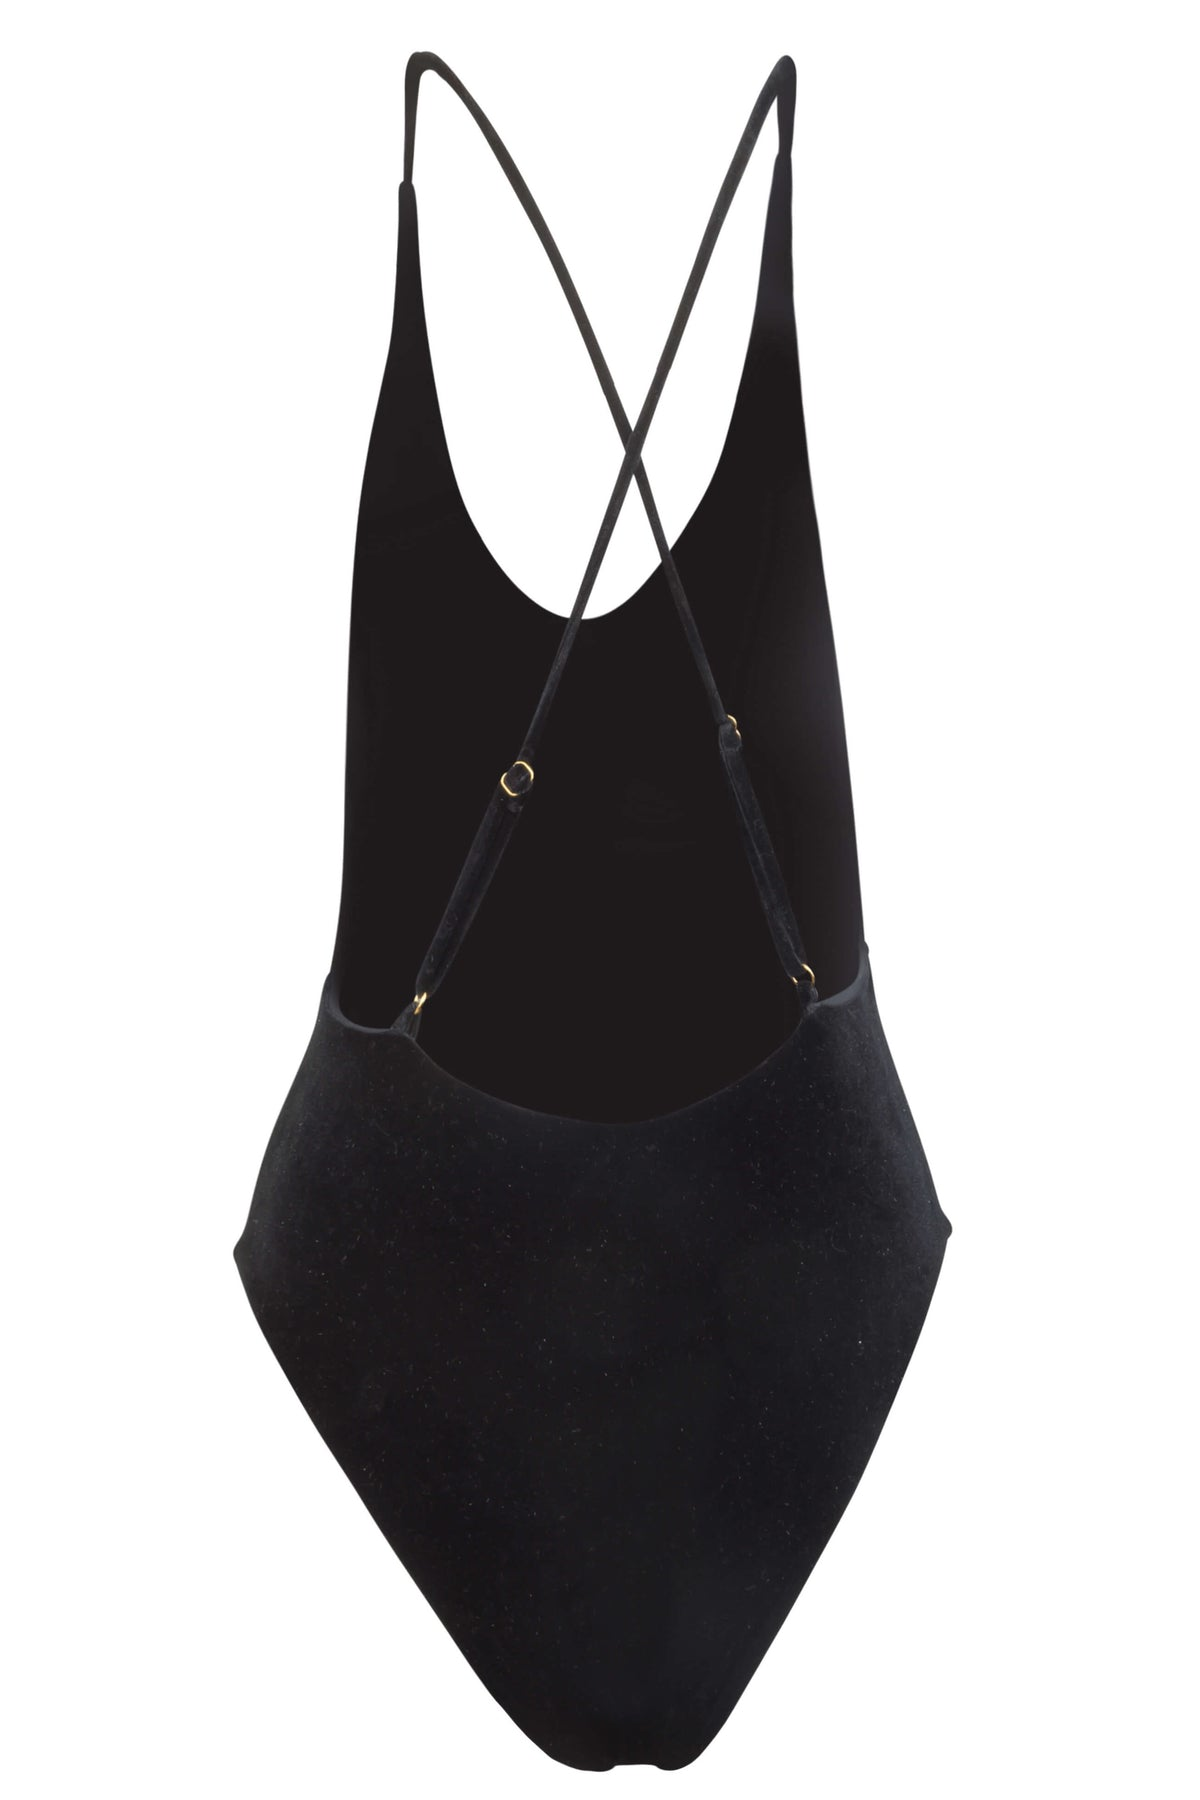 Back image of Zoe black velvet one piece showing the criss-cross, adjustable shoulder straps.